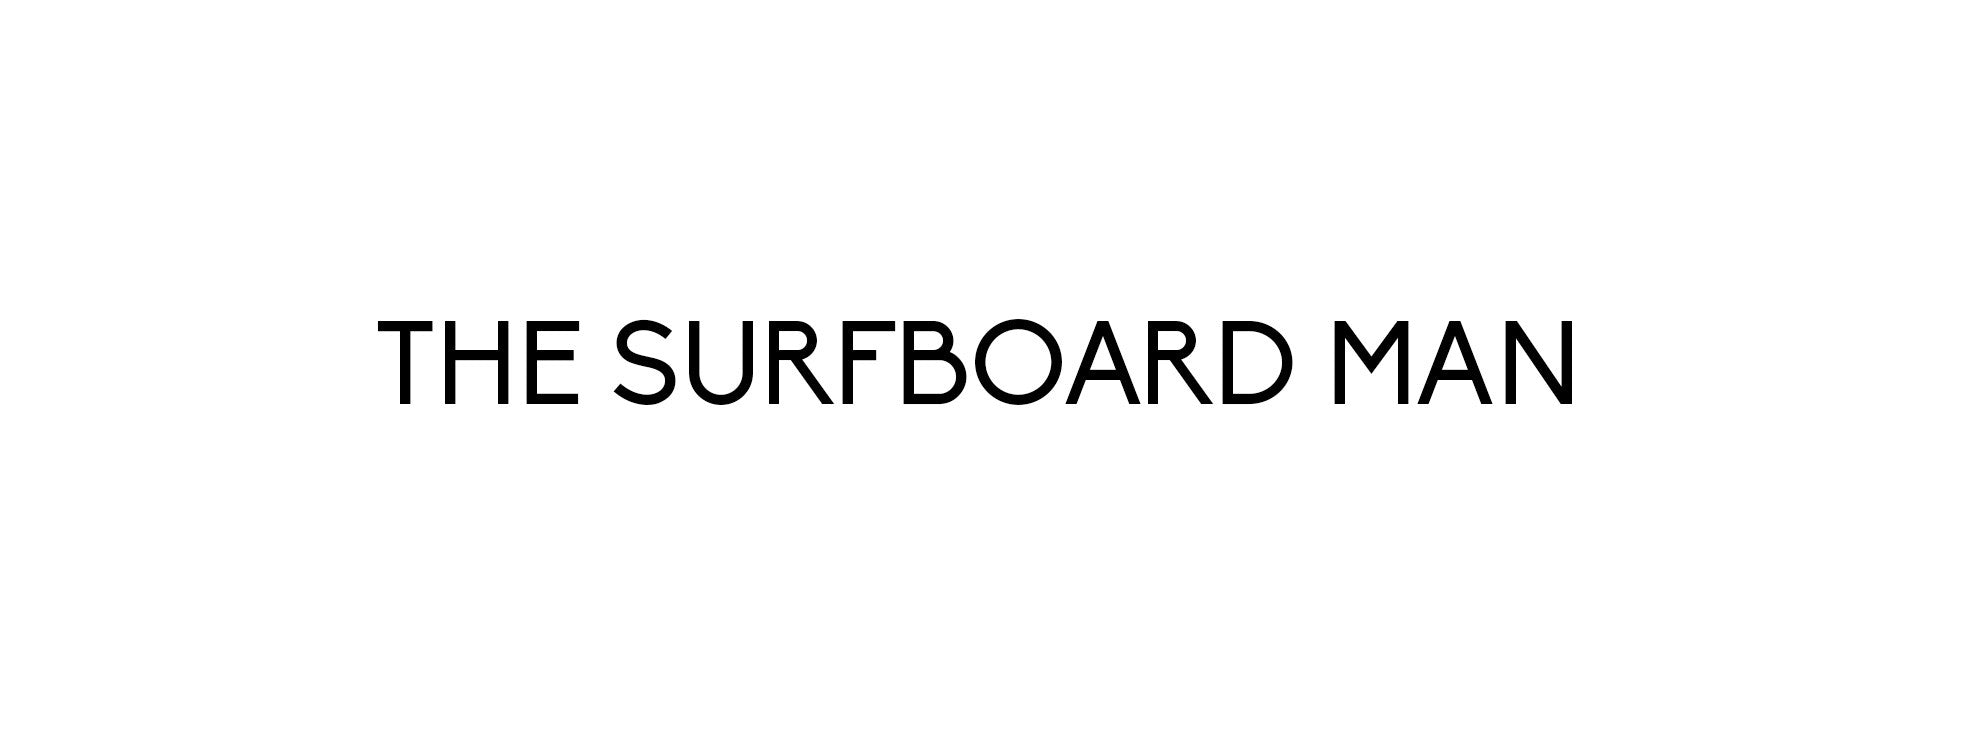 The Surfboard Man Exclusive Interview with Slyde Handboards Steve Watts